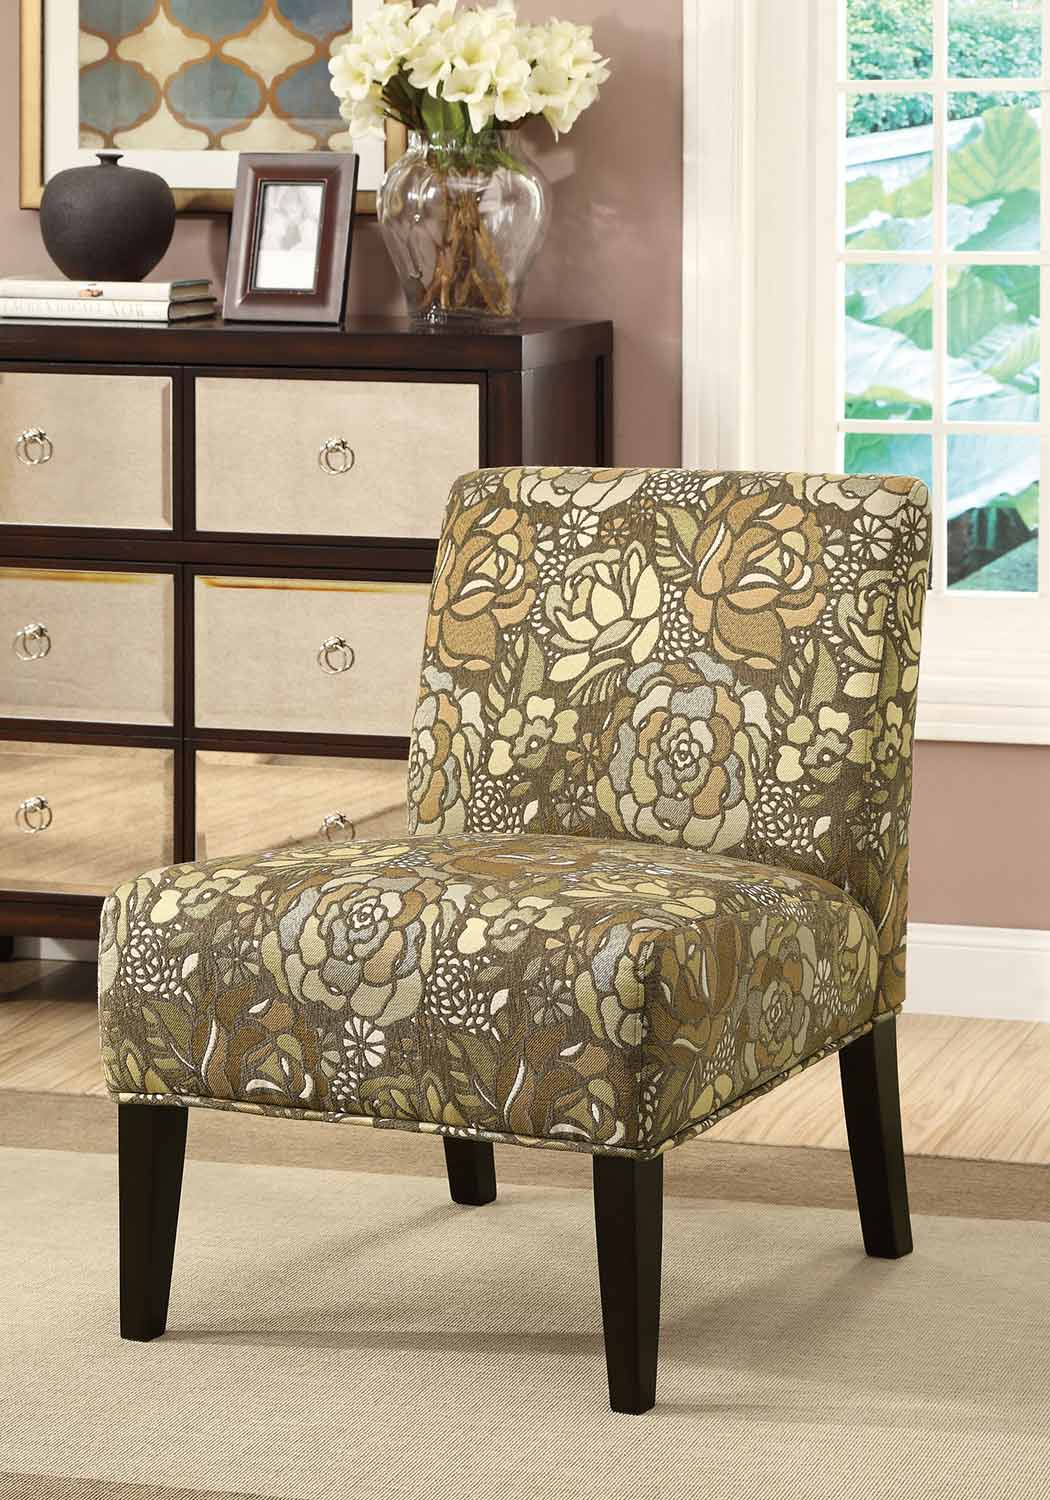 Coaster 902163 Accent Chair - Earth Tone Stained Glass